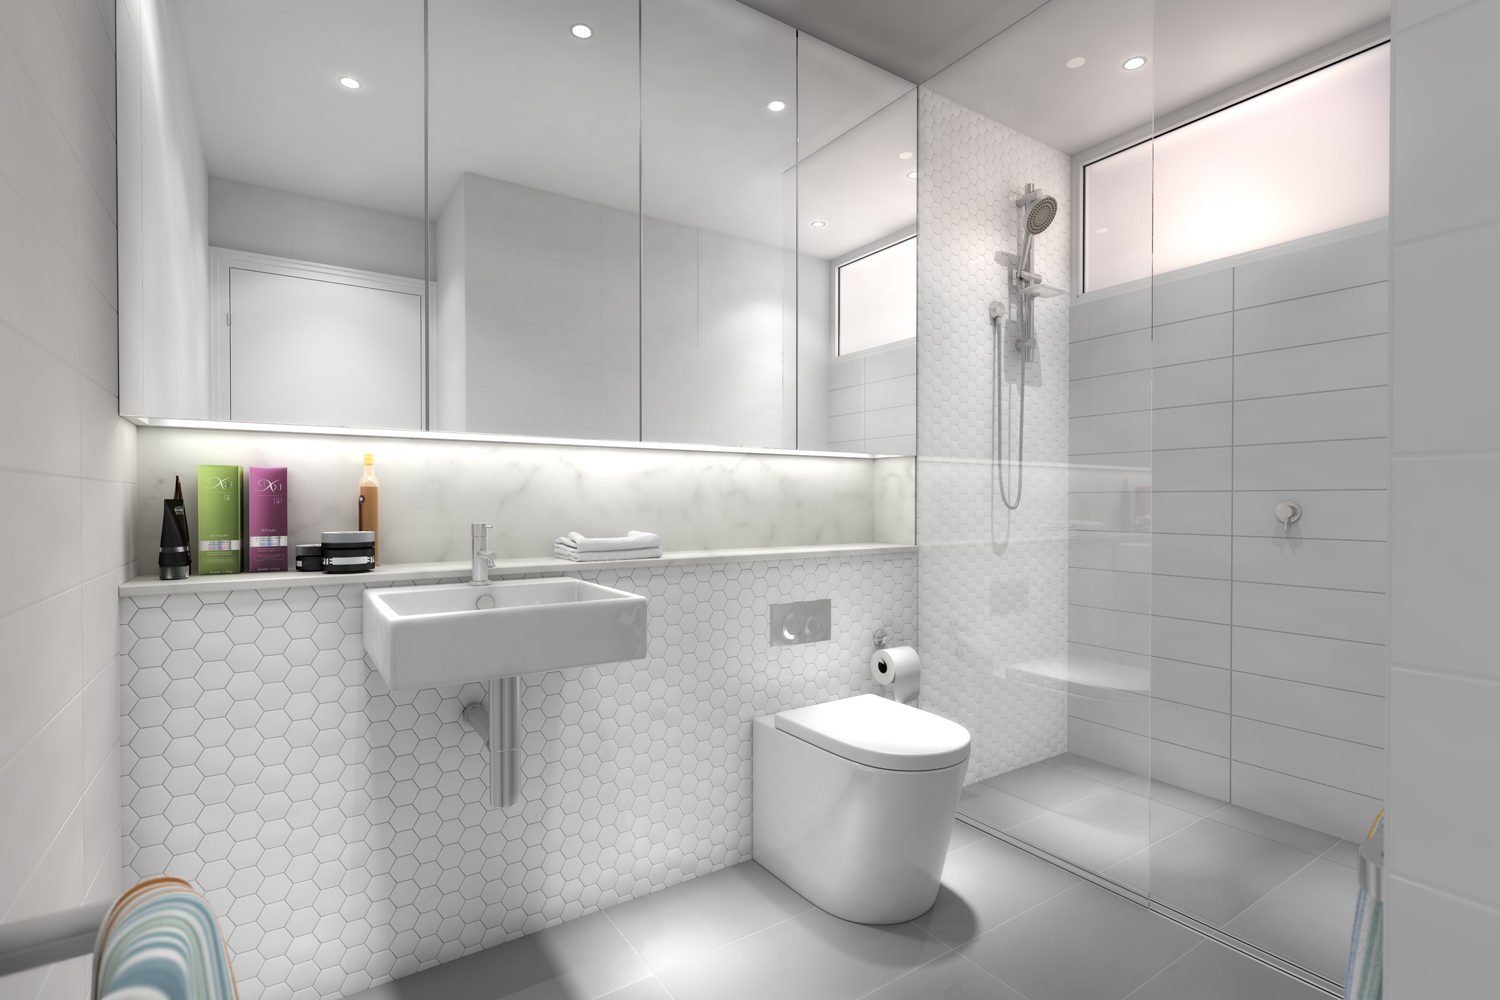 LASI4451_Laing_and_Simmons_Albany_St_Bathroom_Electric_Art_1500.jpg